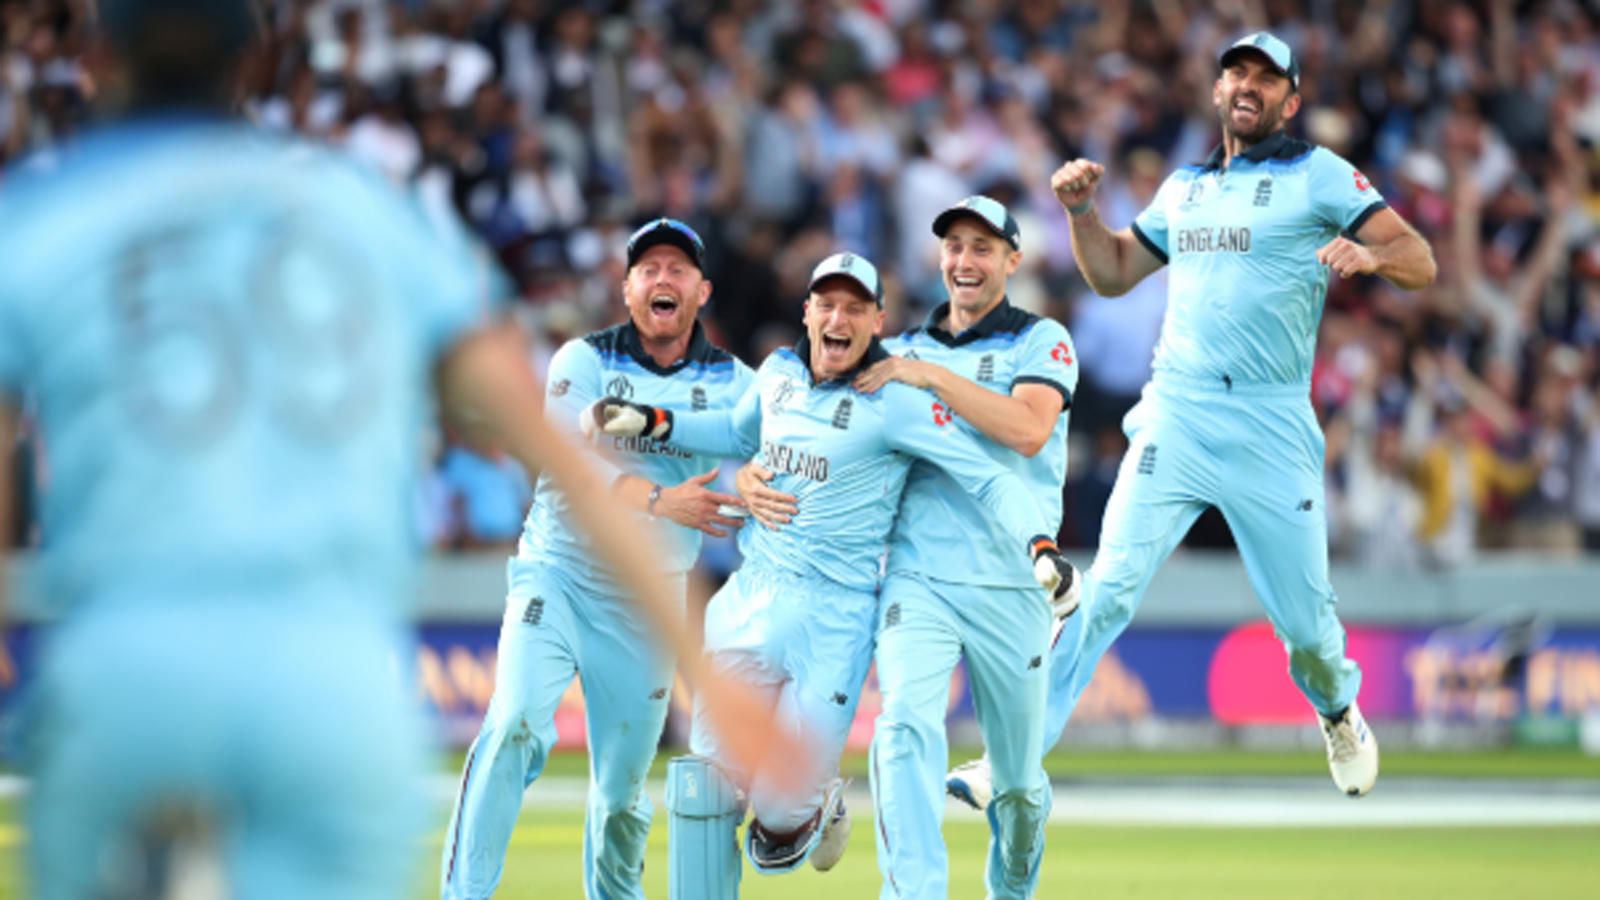 eng-vs-nz-final-england-win-maiden-world-cup-title-after-super-over-thriller